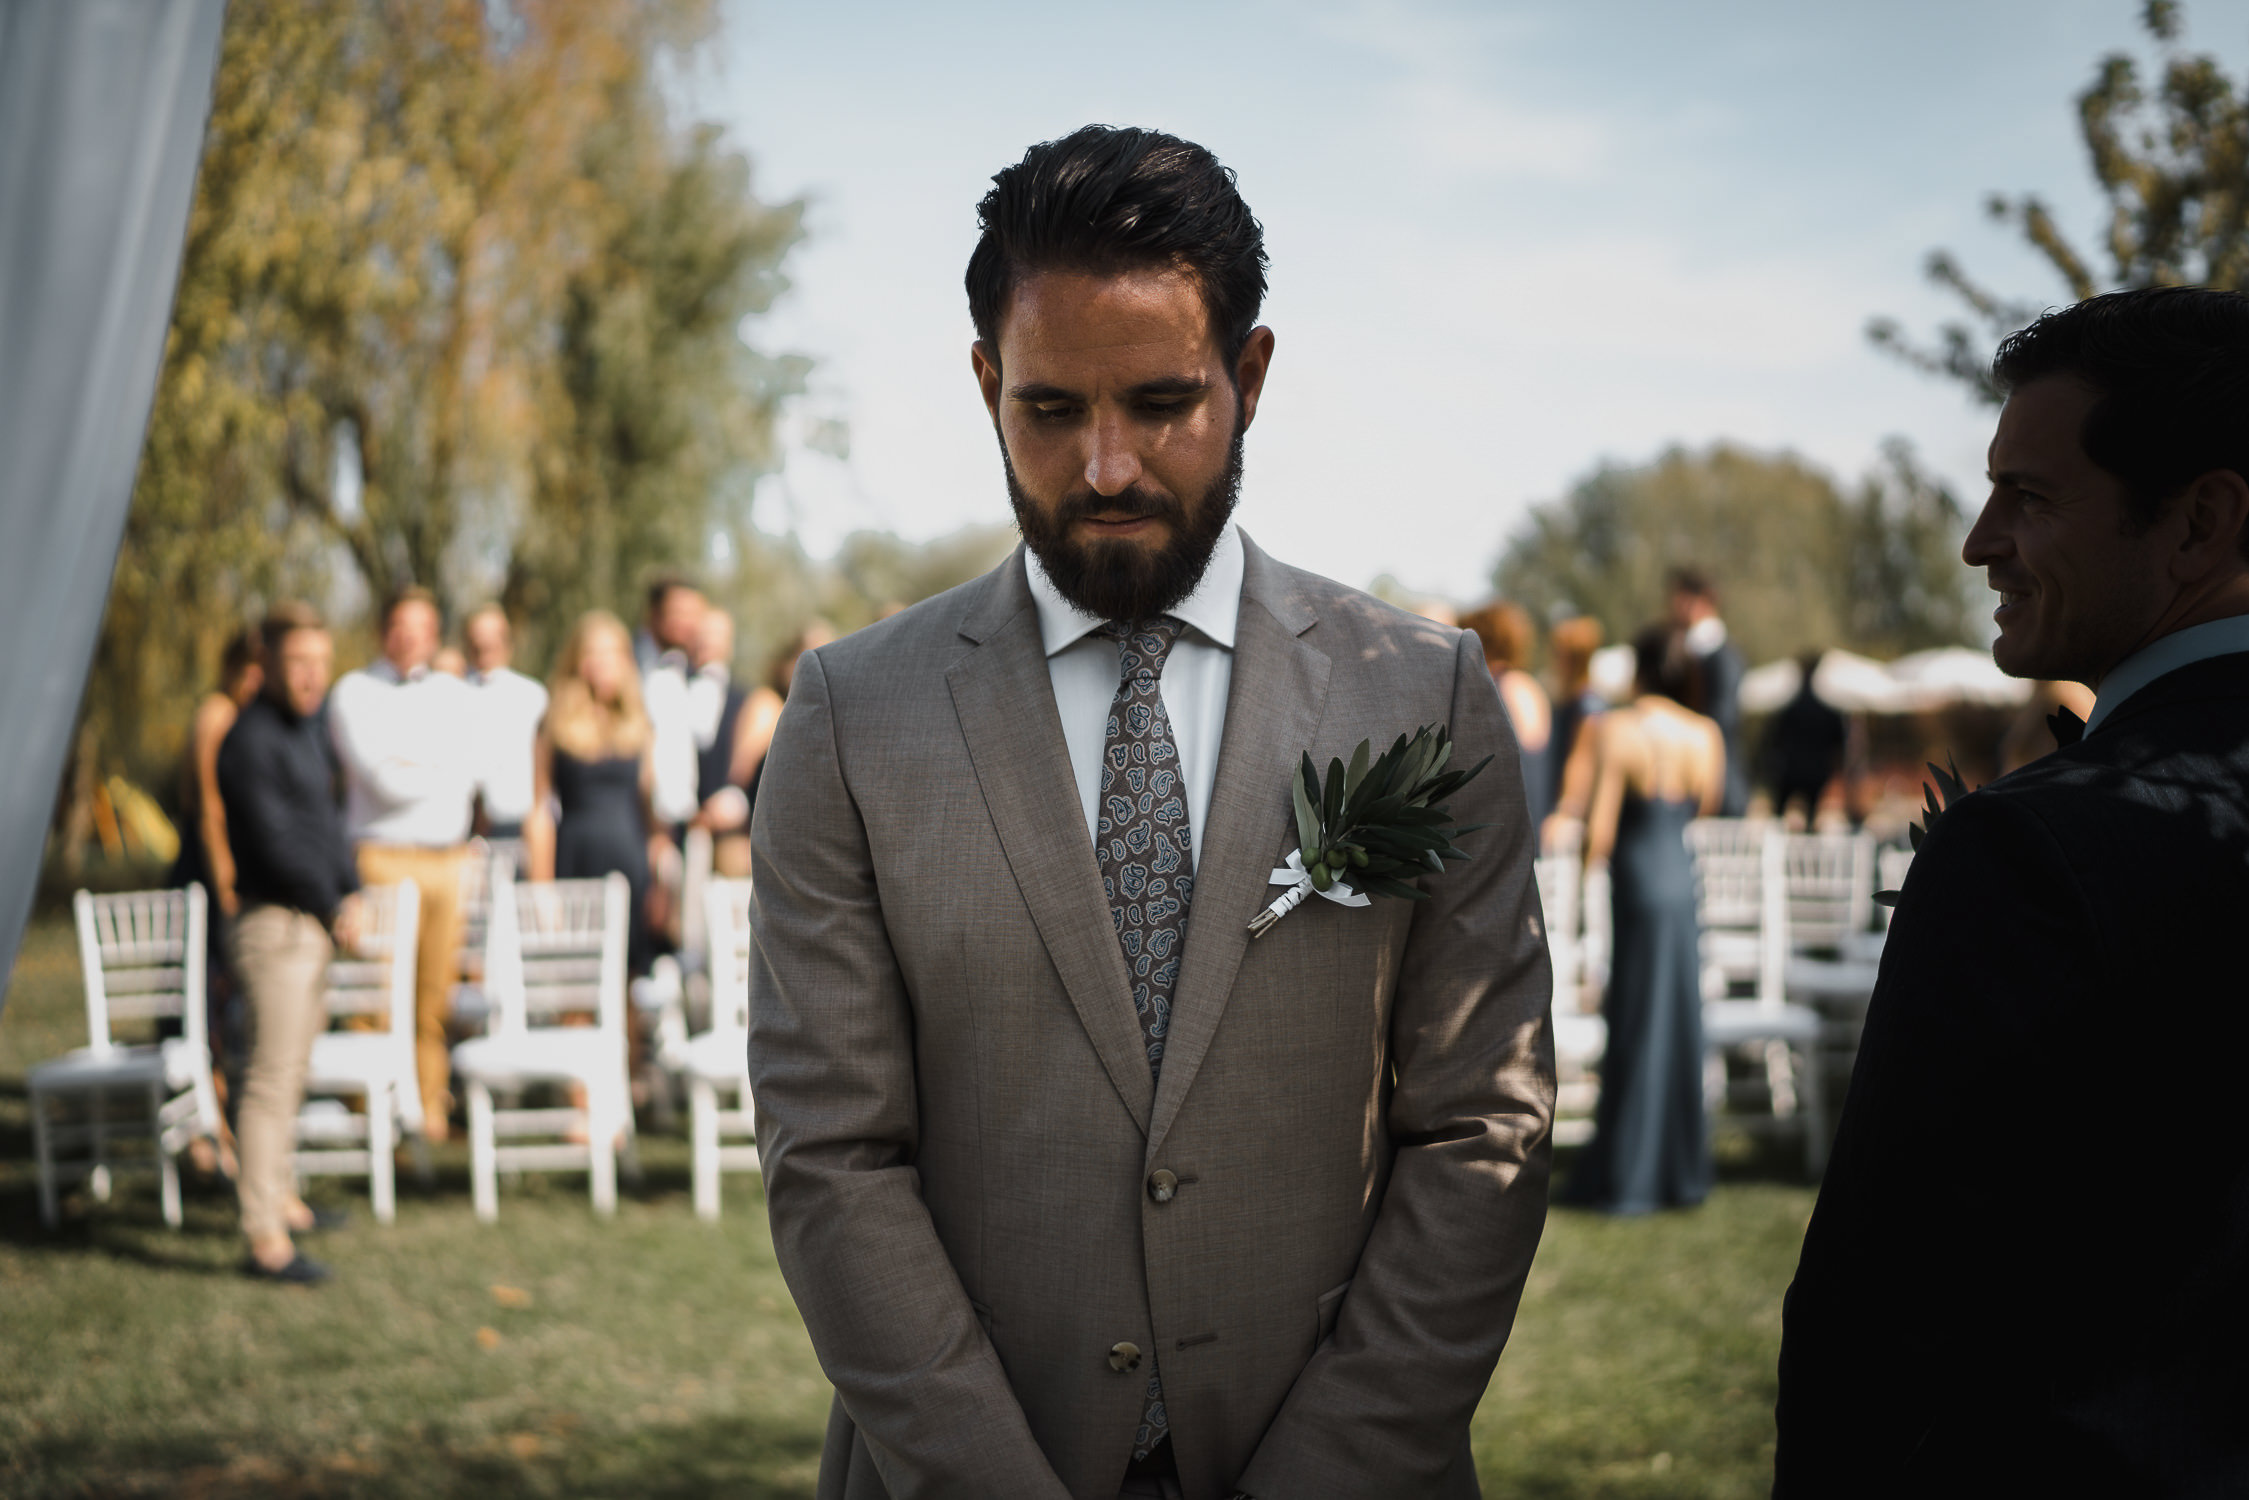 beautiful groom at destination wedding tuscany photography by mark hadden